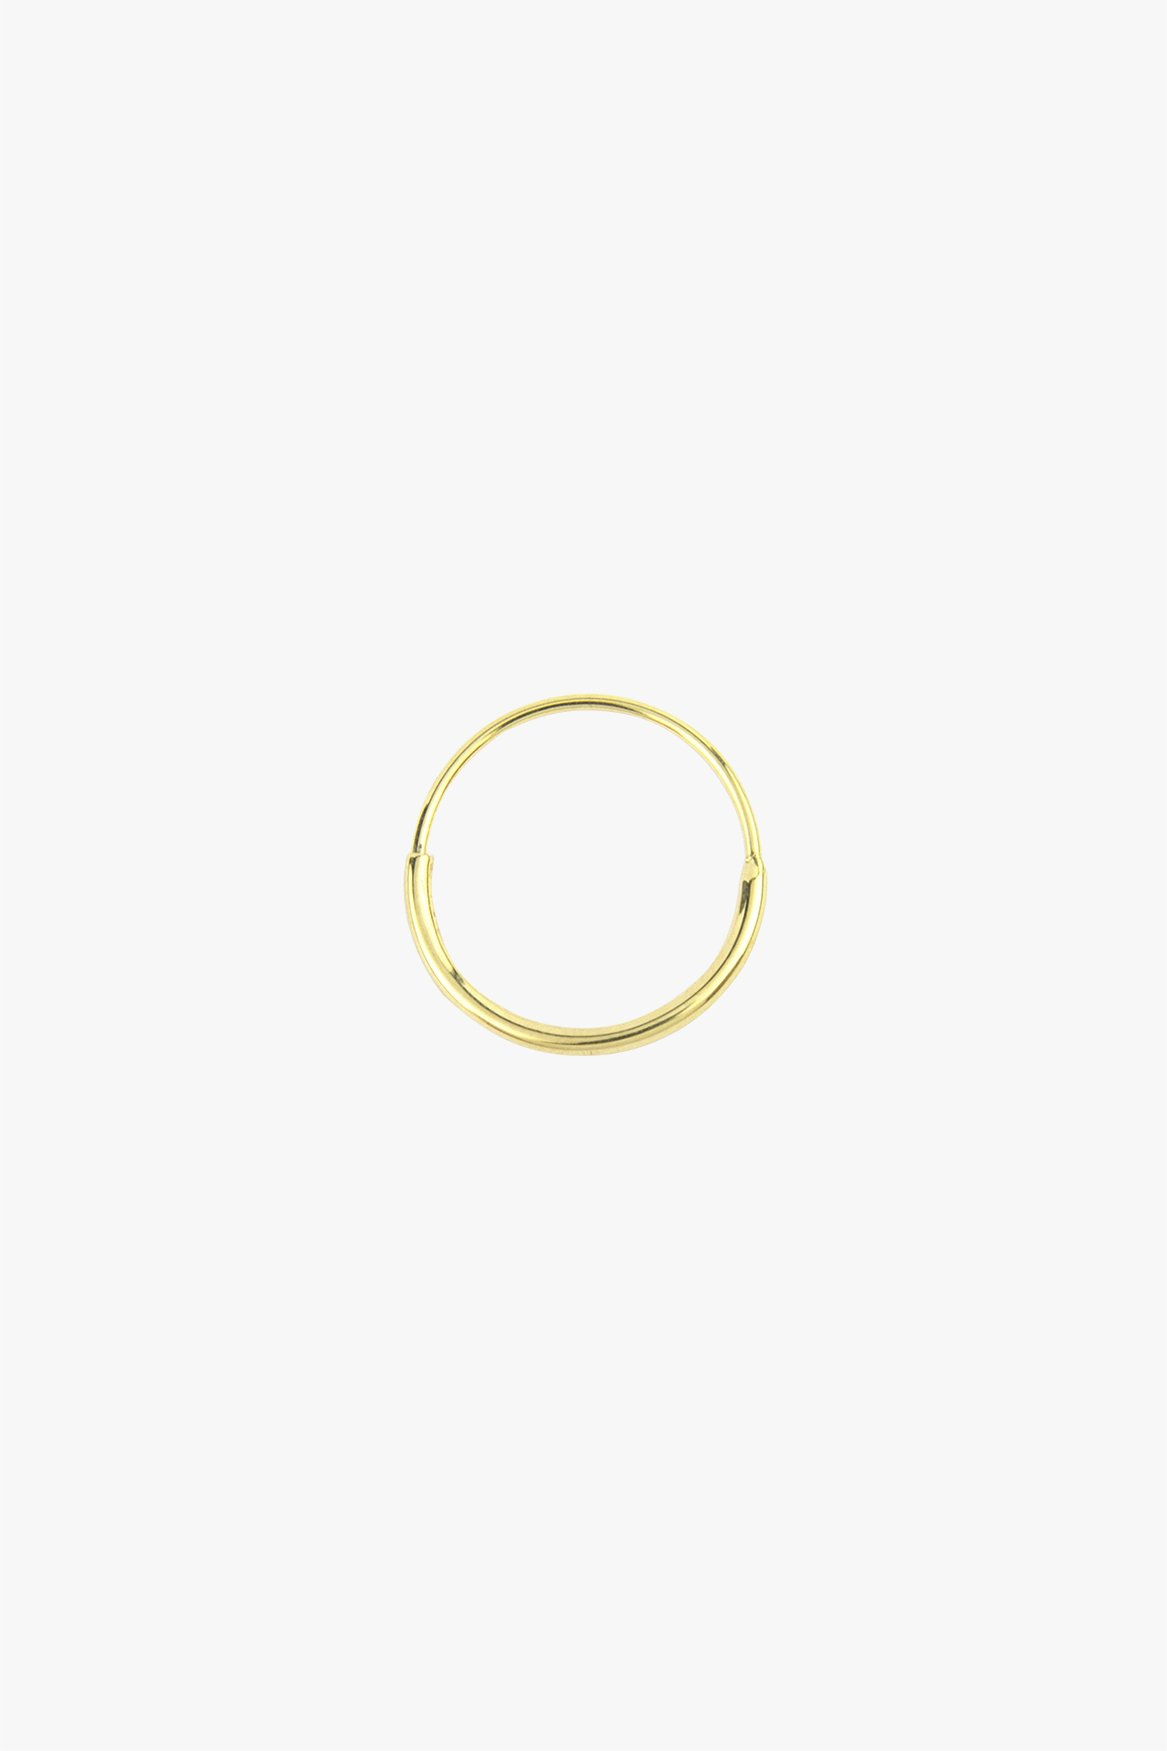 wildthings collectables Hoop with detail gold